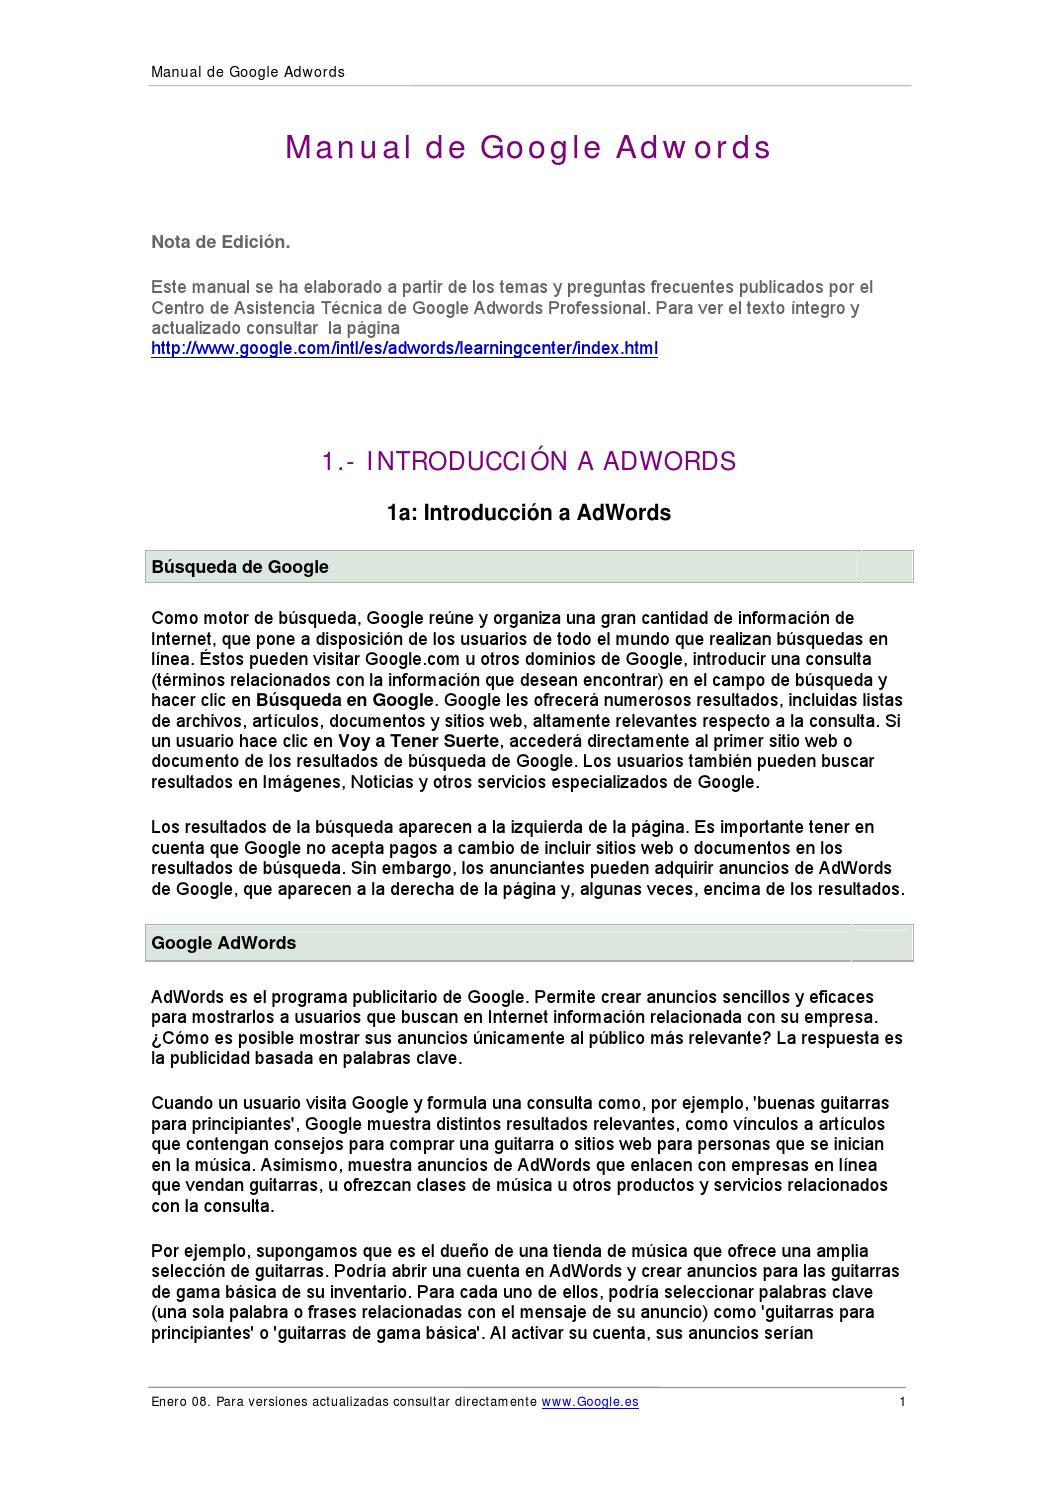 Manual google adwords by David Chupayo Paucar - issuu